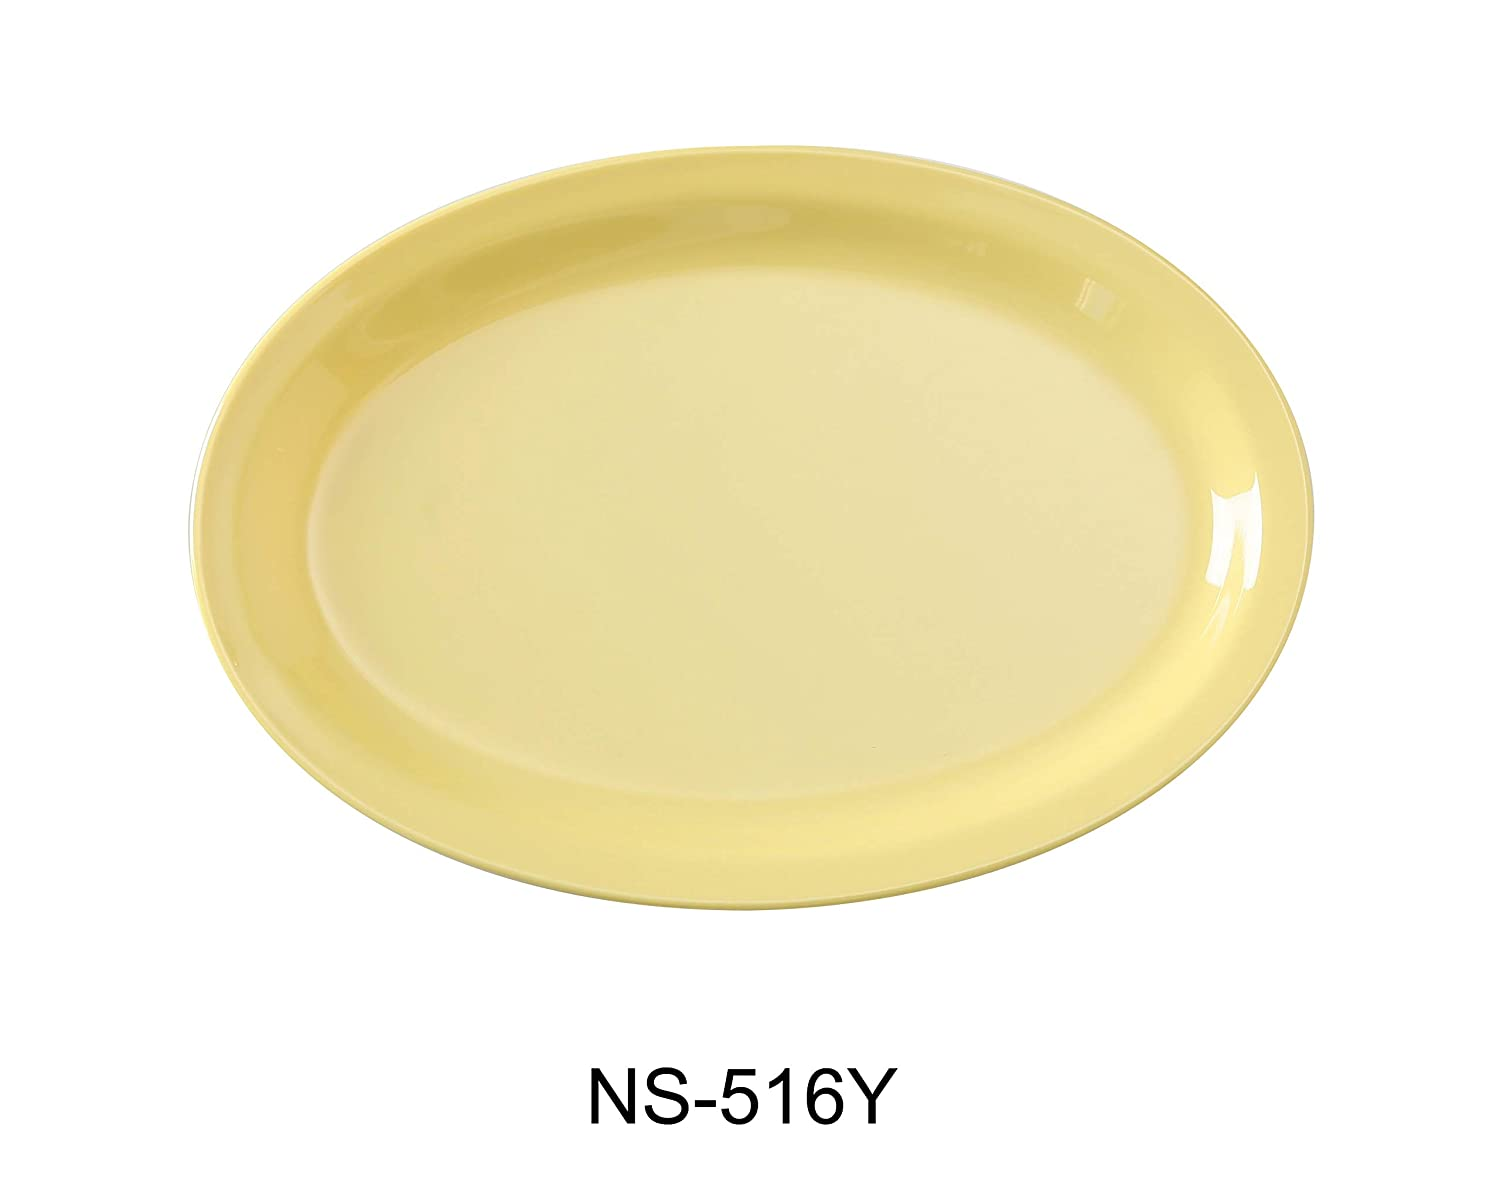 Yanco NS-516Y Nessico Oval Platter with Narrow Rim, 15.5